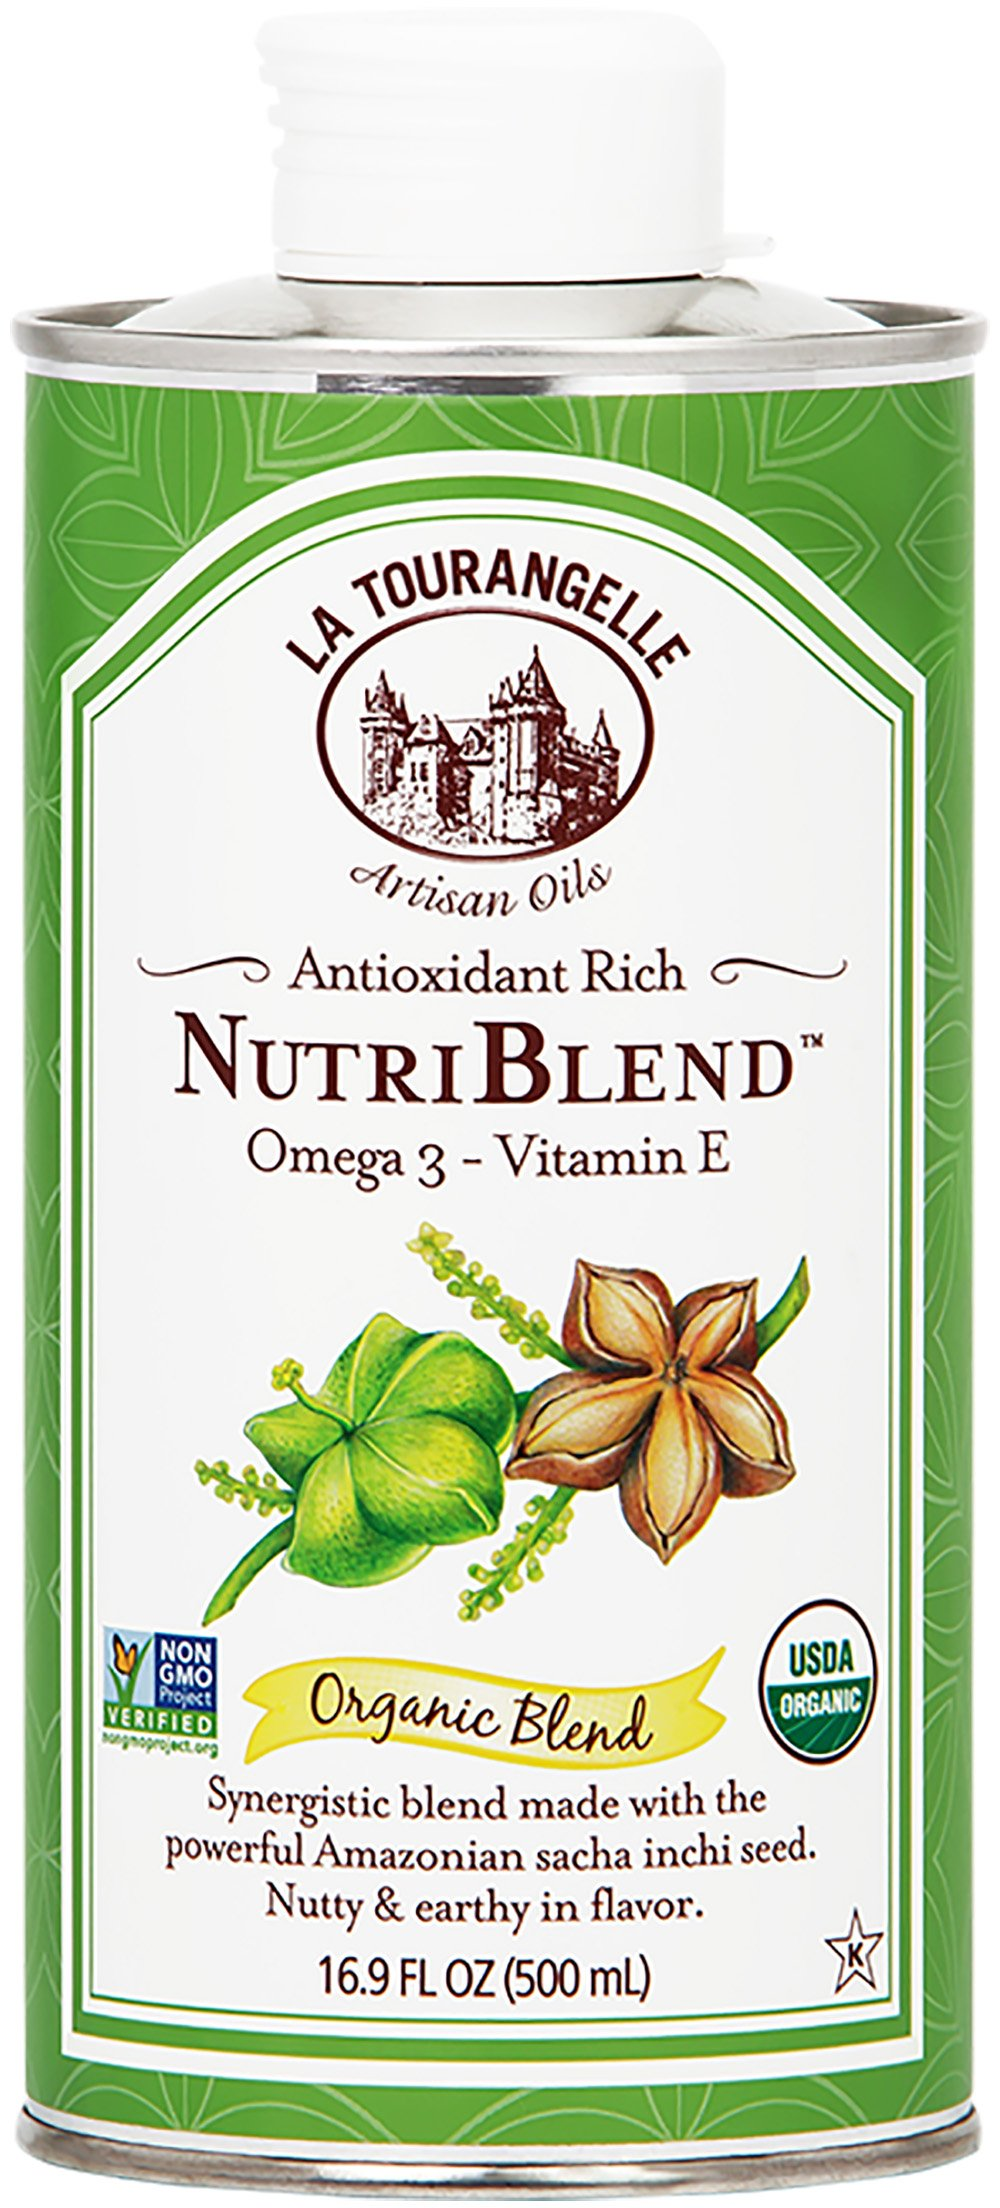 La Tourangelle Amazonian Nutriblend 16.9 Fl. Oz, Made from Amazonian Sacha Inchi Seed with Omega 3, Vitamin E, Nutty Flavor